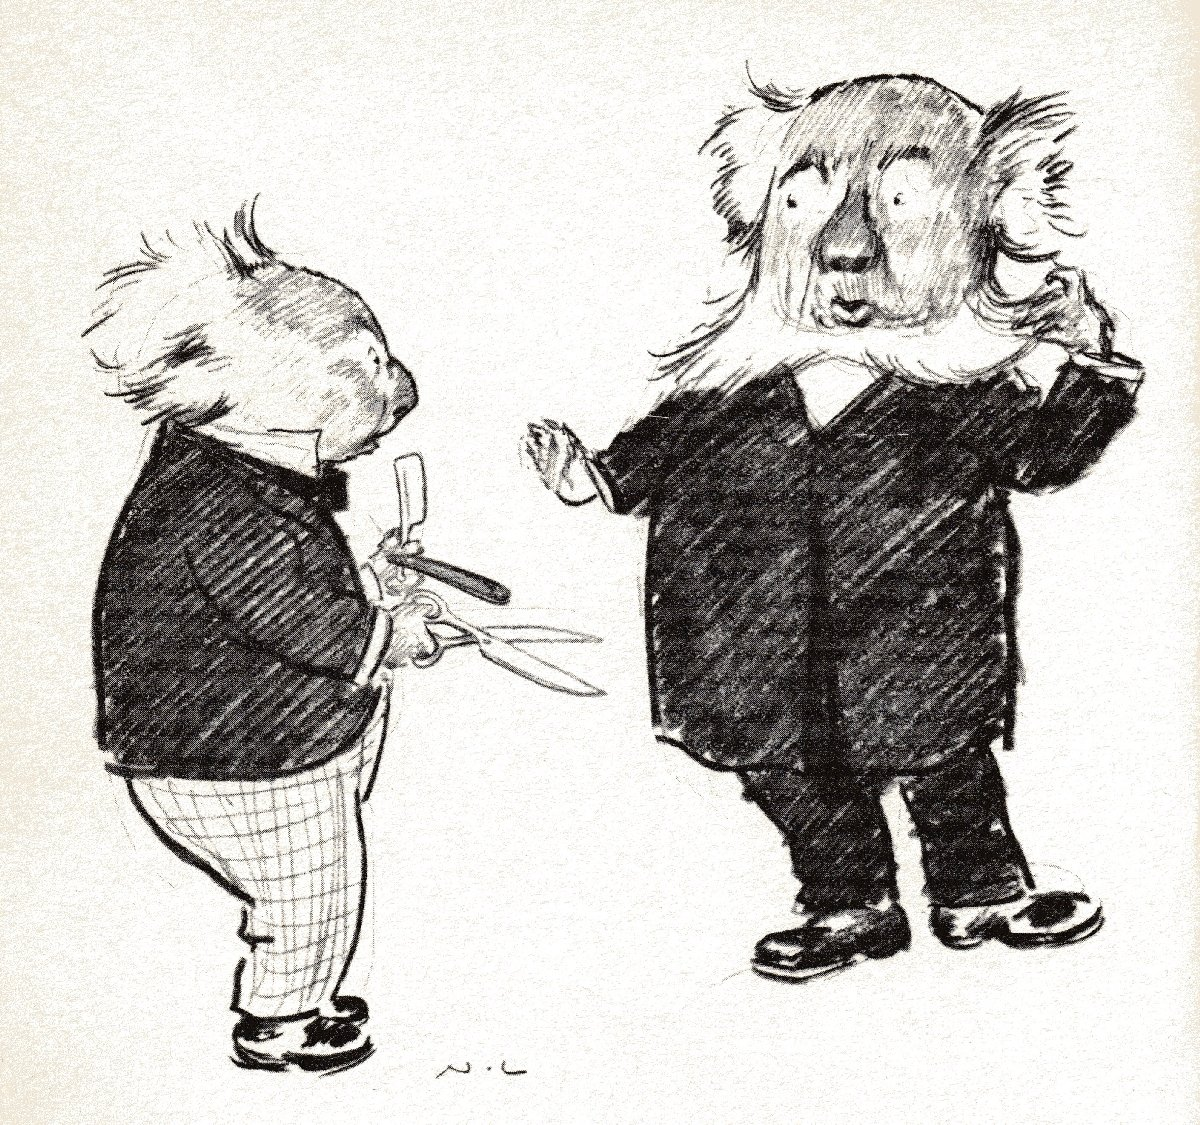 illustration of two anthropomorphic koala bears, one with scissors